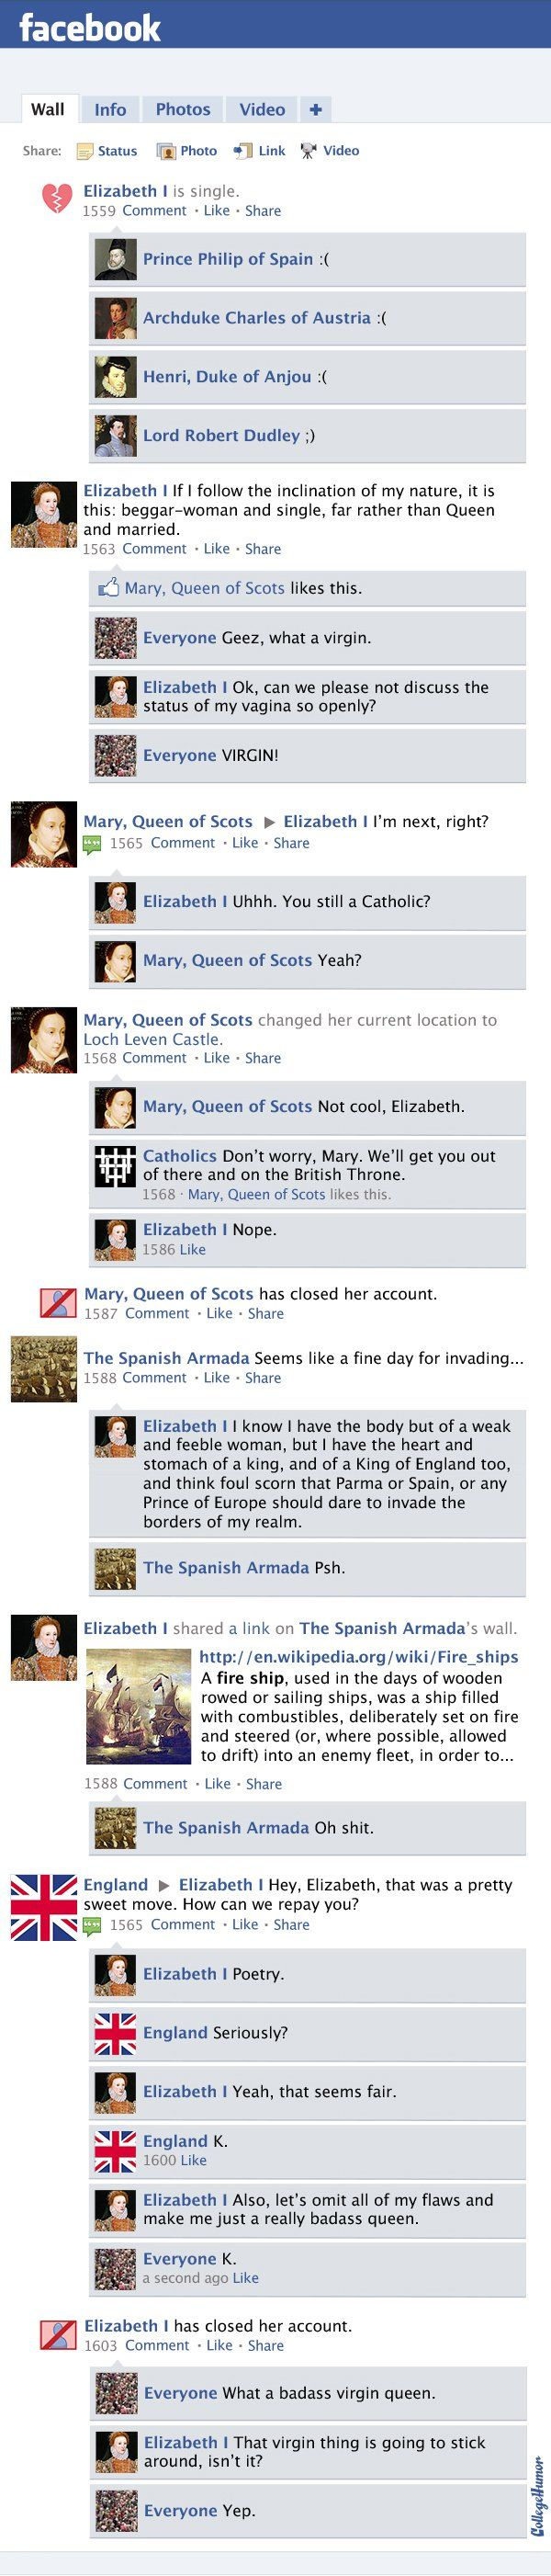 Facebook News Feed History of the World: Protestant Reformation Through Queen Elizabeth I (Page 4) - CollegeHumor Article